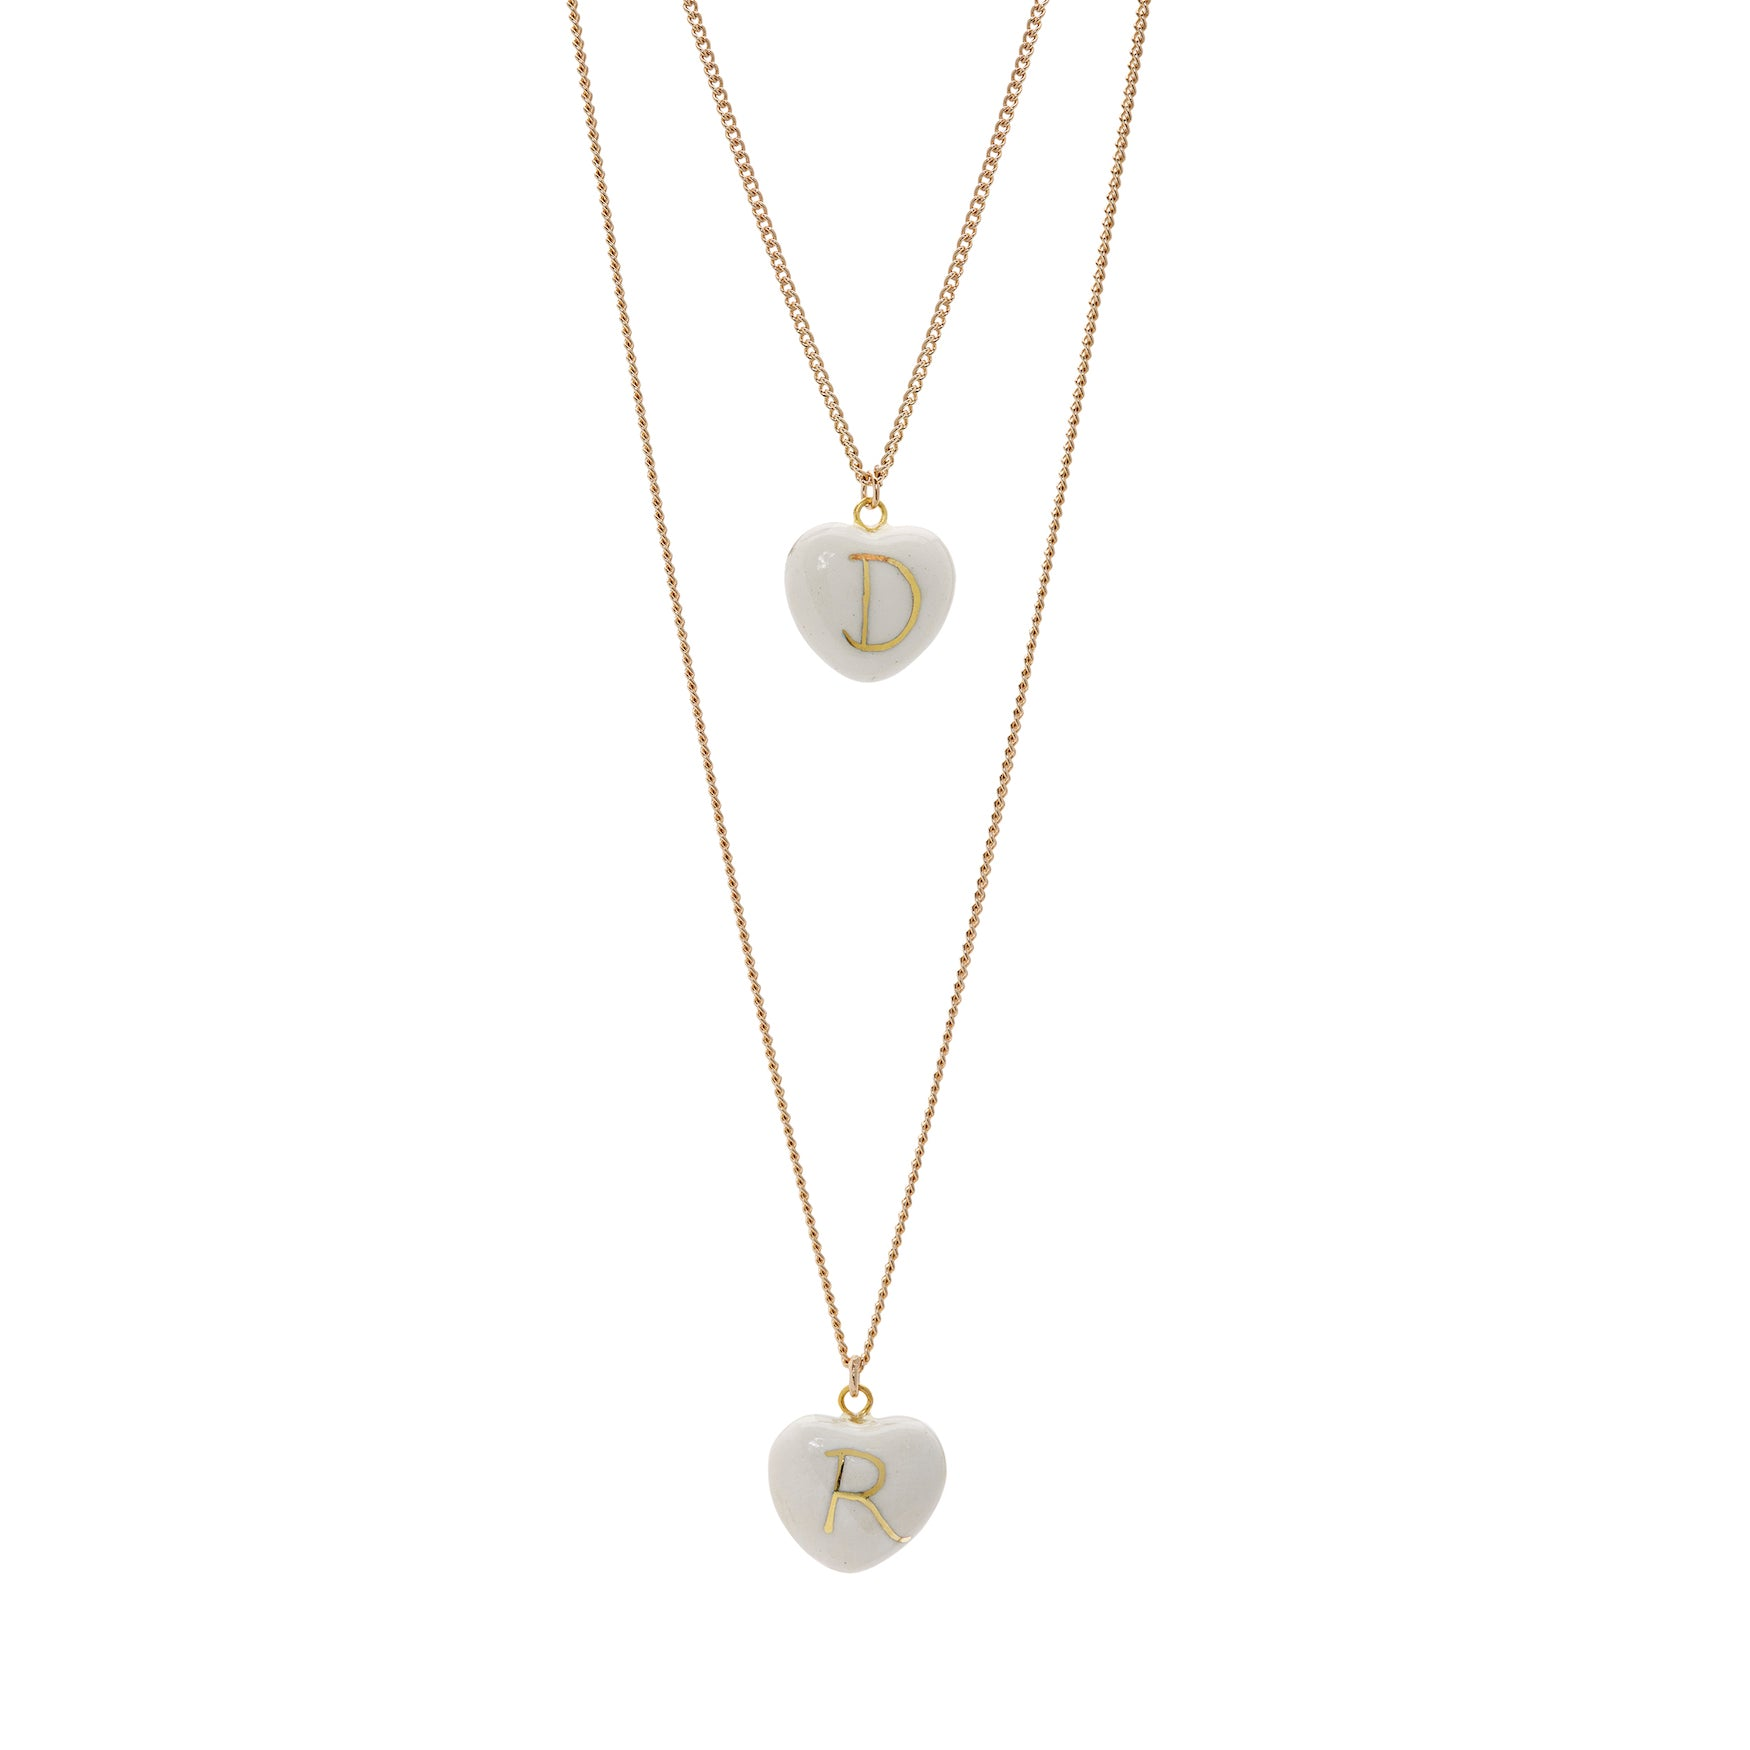 Double Initial Heart Necklace